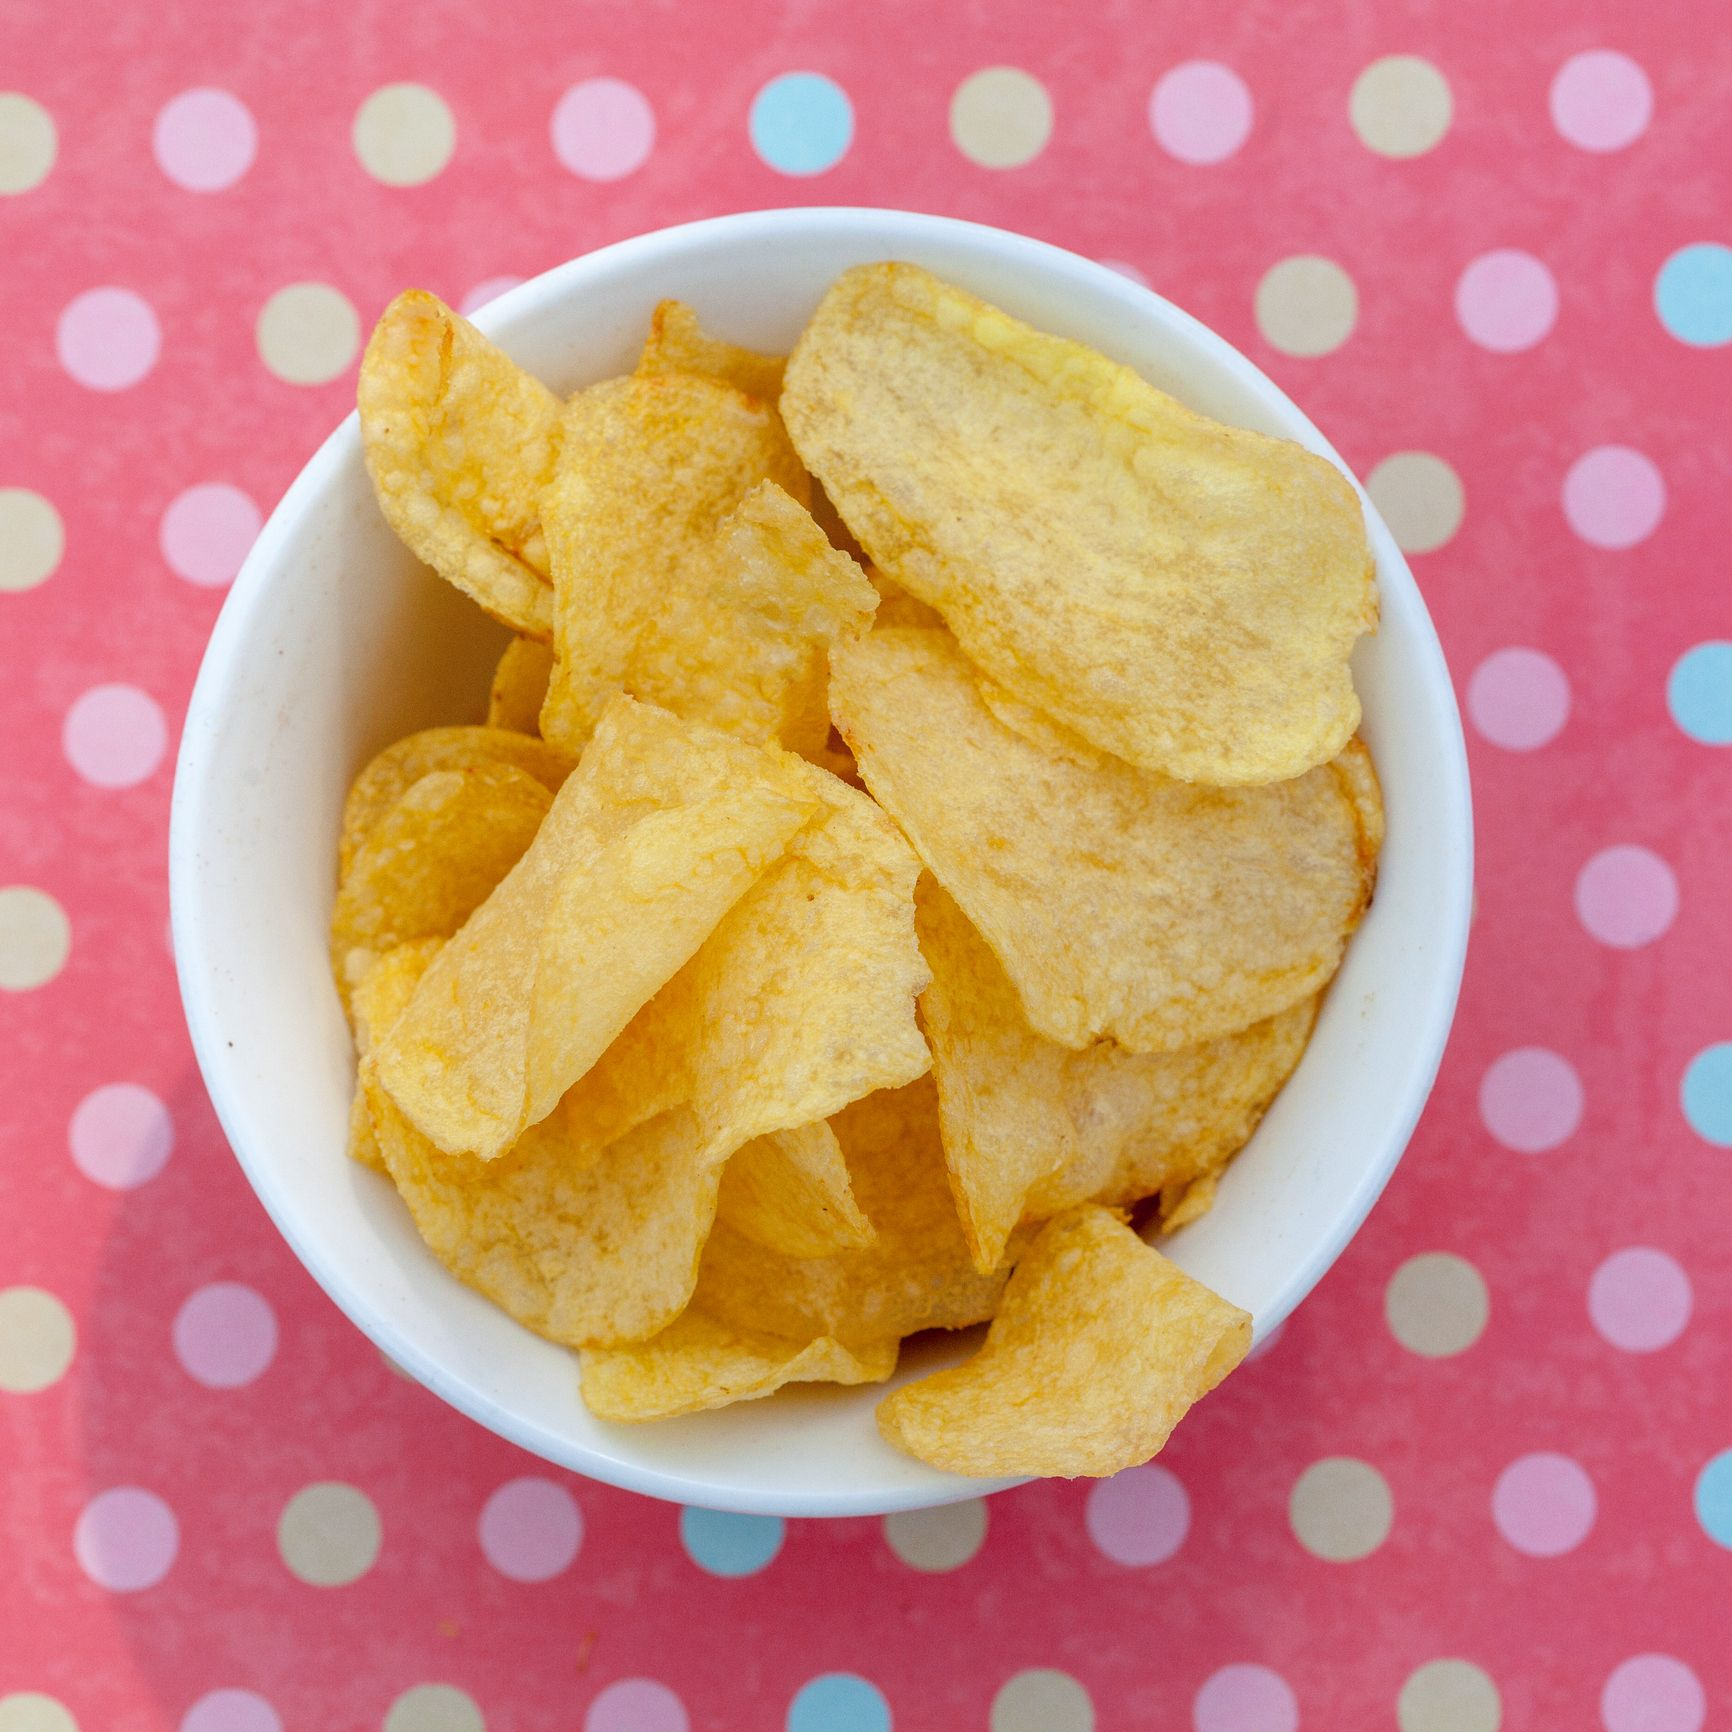 These are the 10 most addictive foods